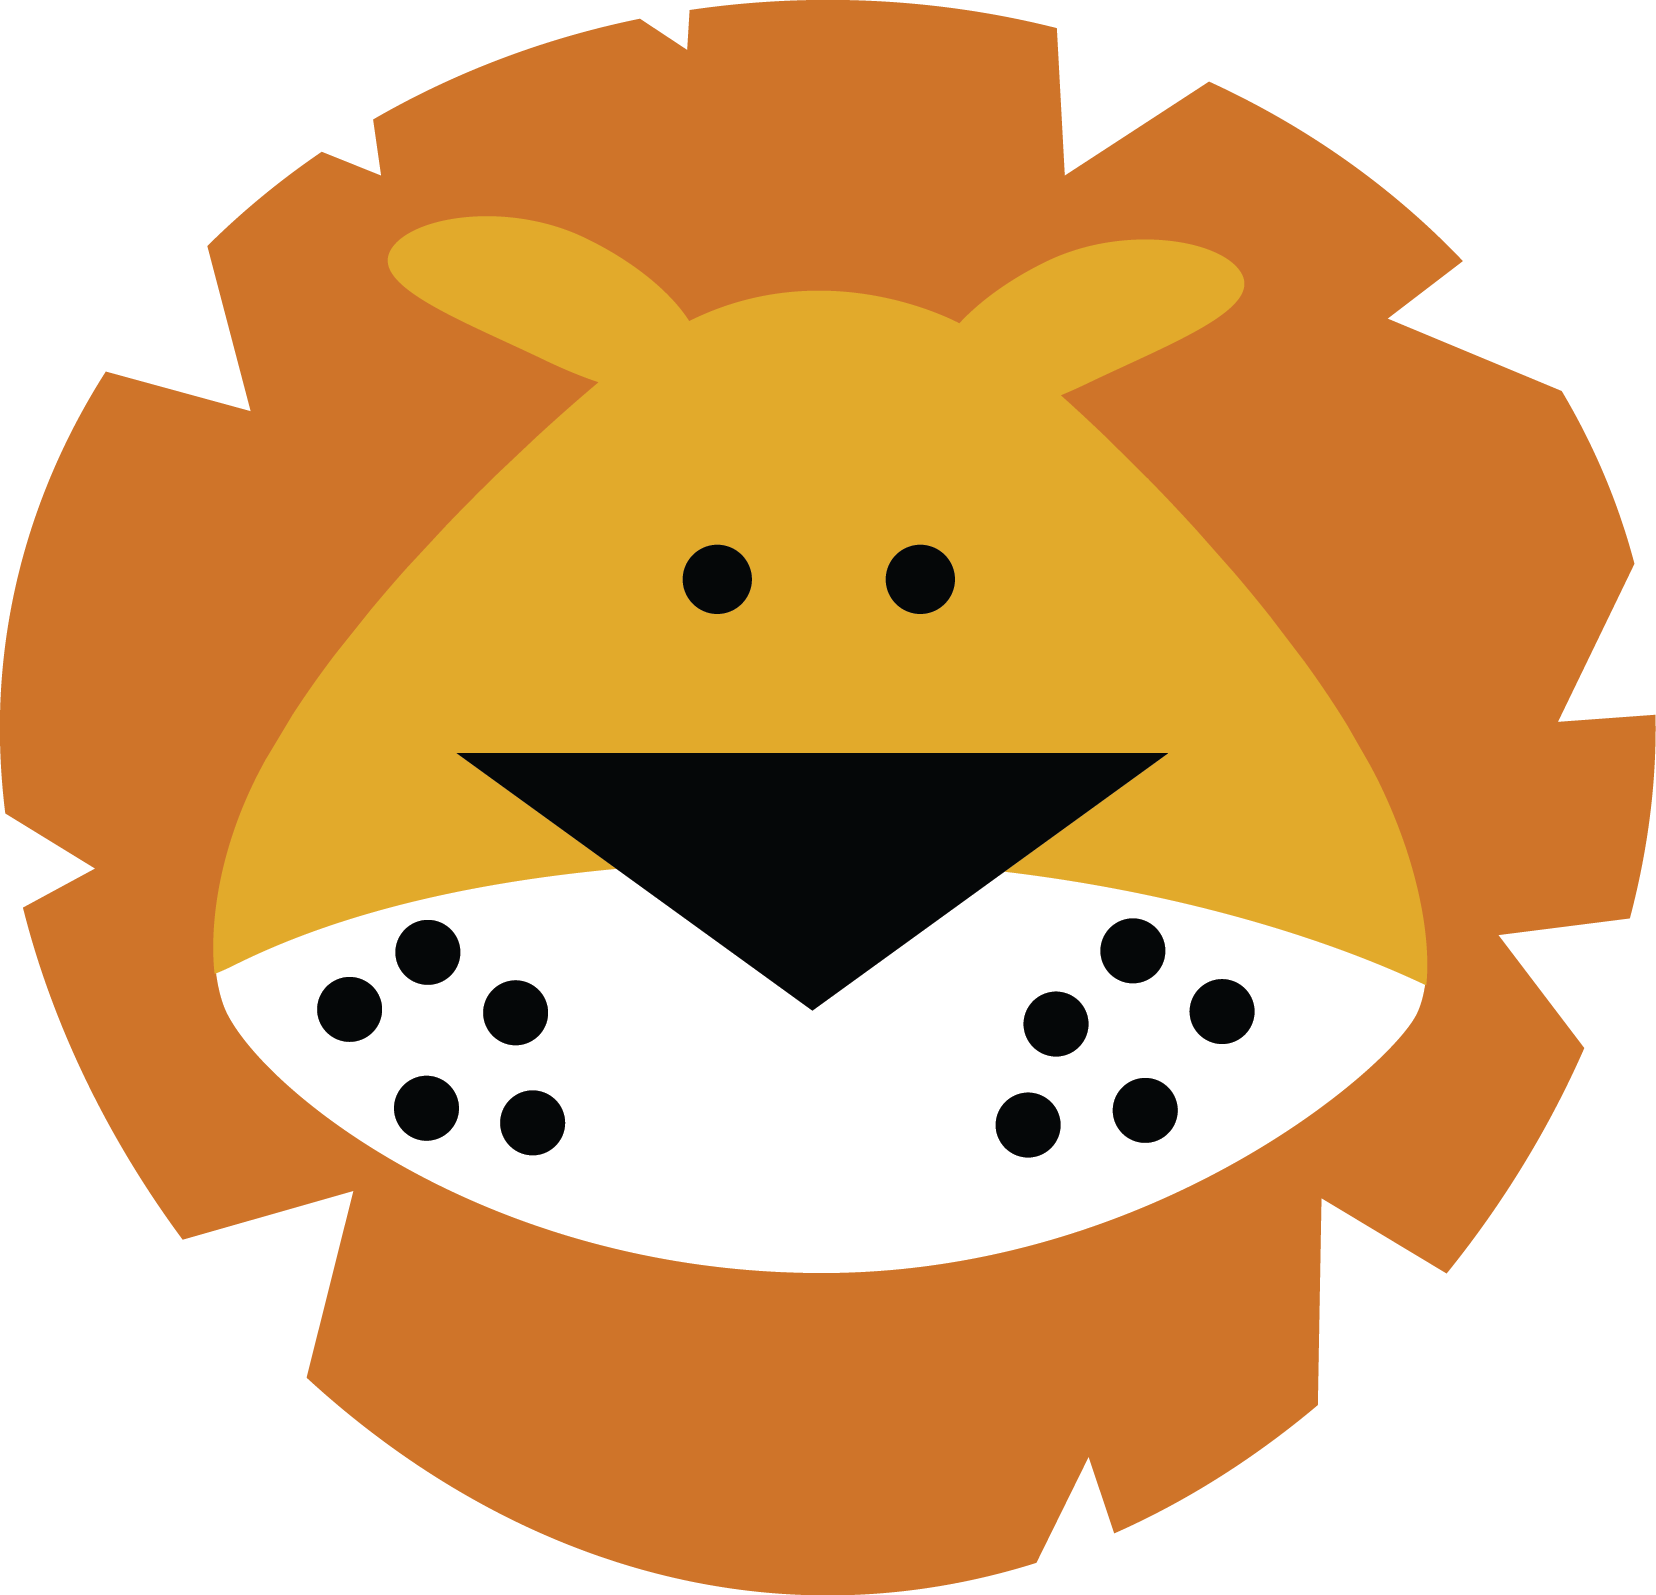 lion face miss kate cuttables scrapbook animals pinterest rh pinterest com lion face drawing clipart cartoon lion face clipart